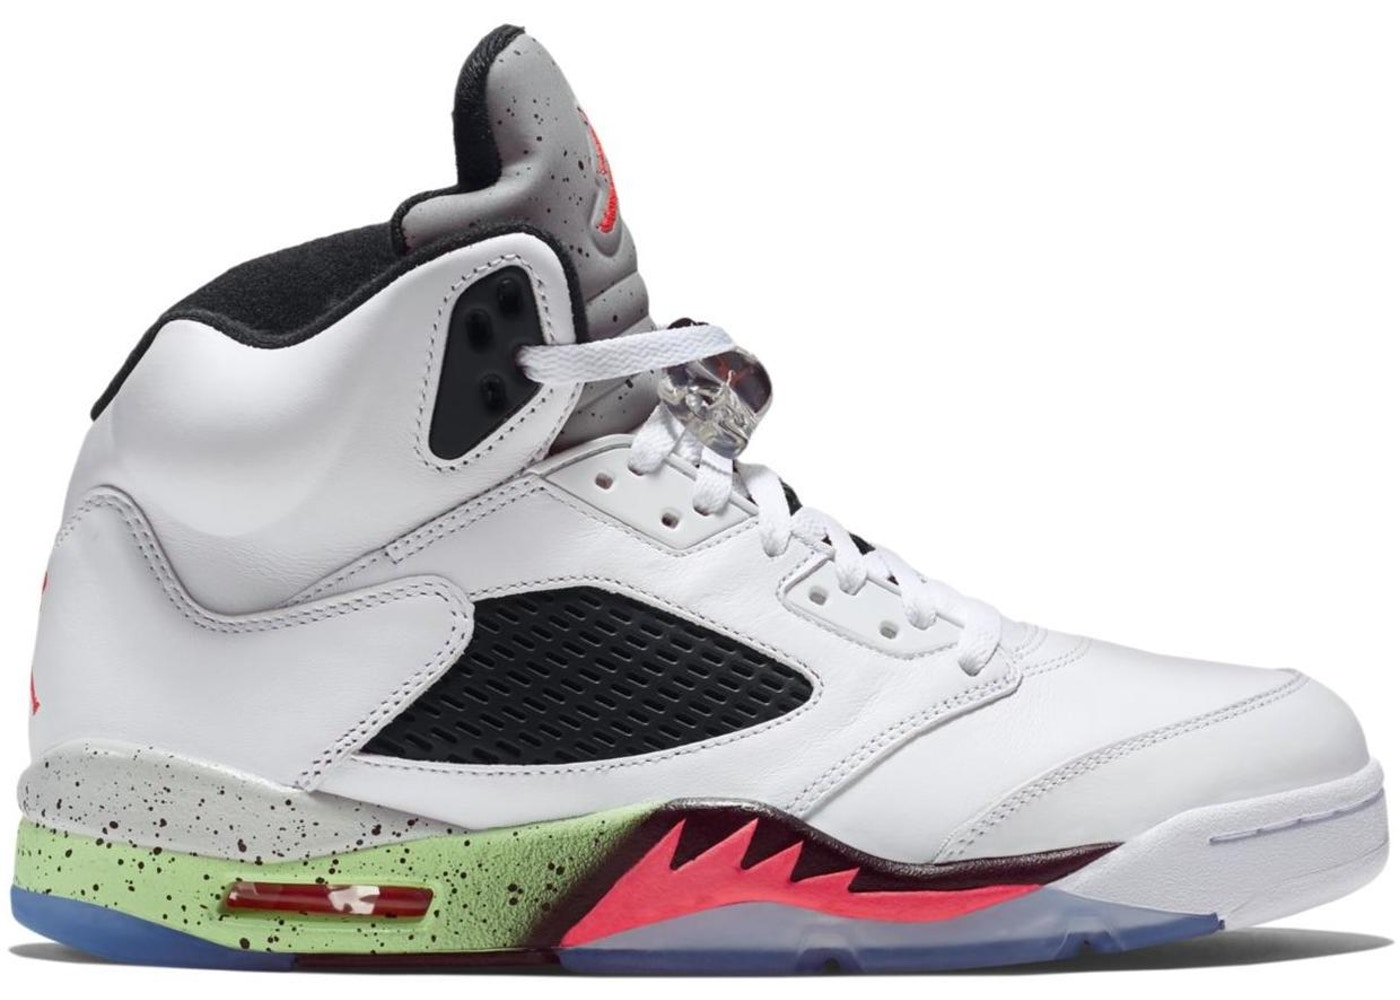 official photos 8db2f 0219f Jordan 5 Retro Poison Green - 136027-115